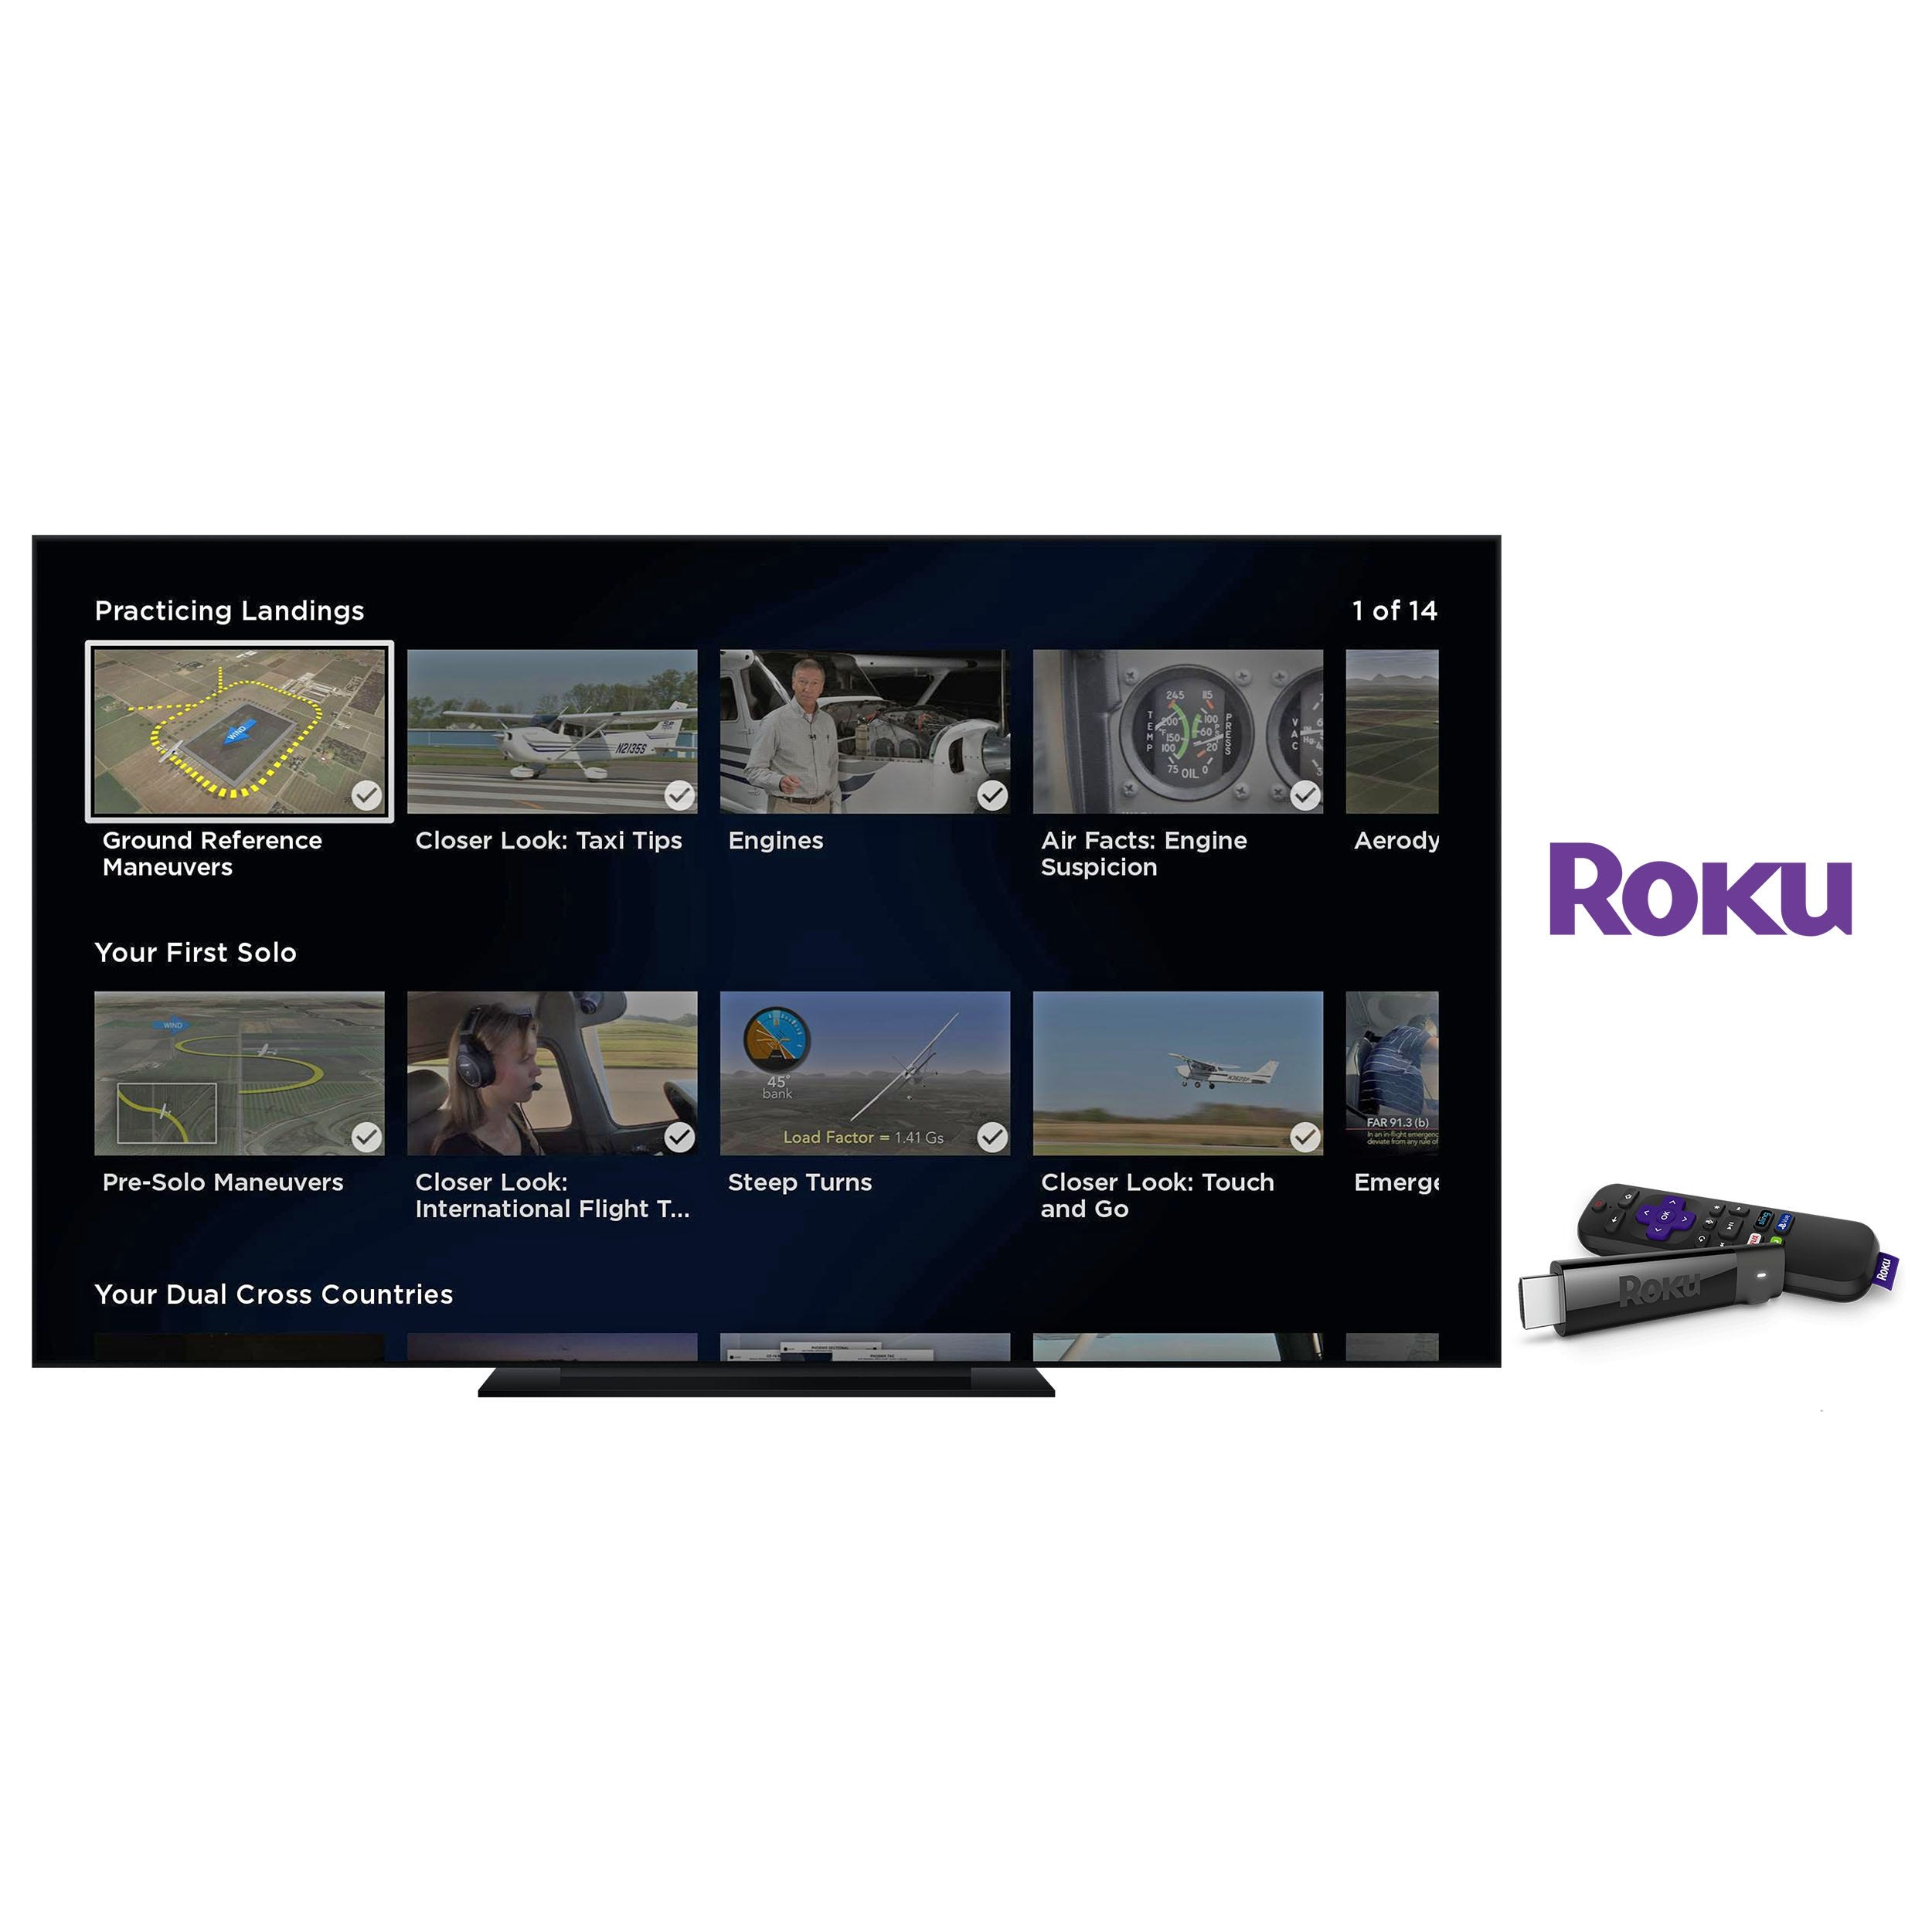 TV is back - how to use Apple TV and Roku to watch Sporty's